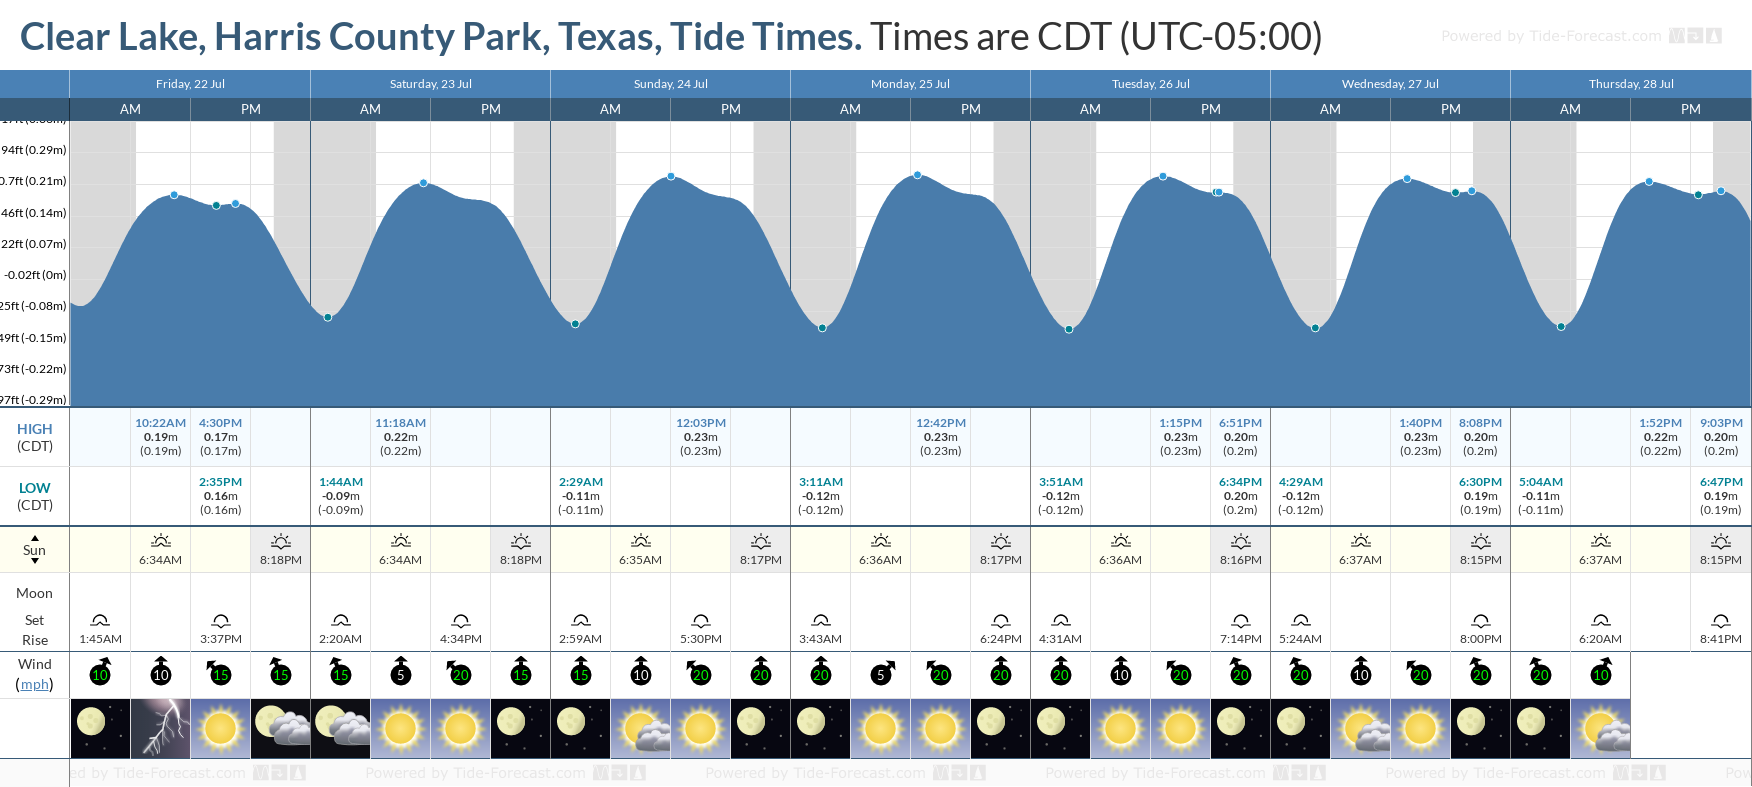 Clear Lake, Harris County Park, Texas Tide Chart including high and low tide tide times for the next 7 days